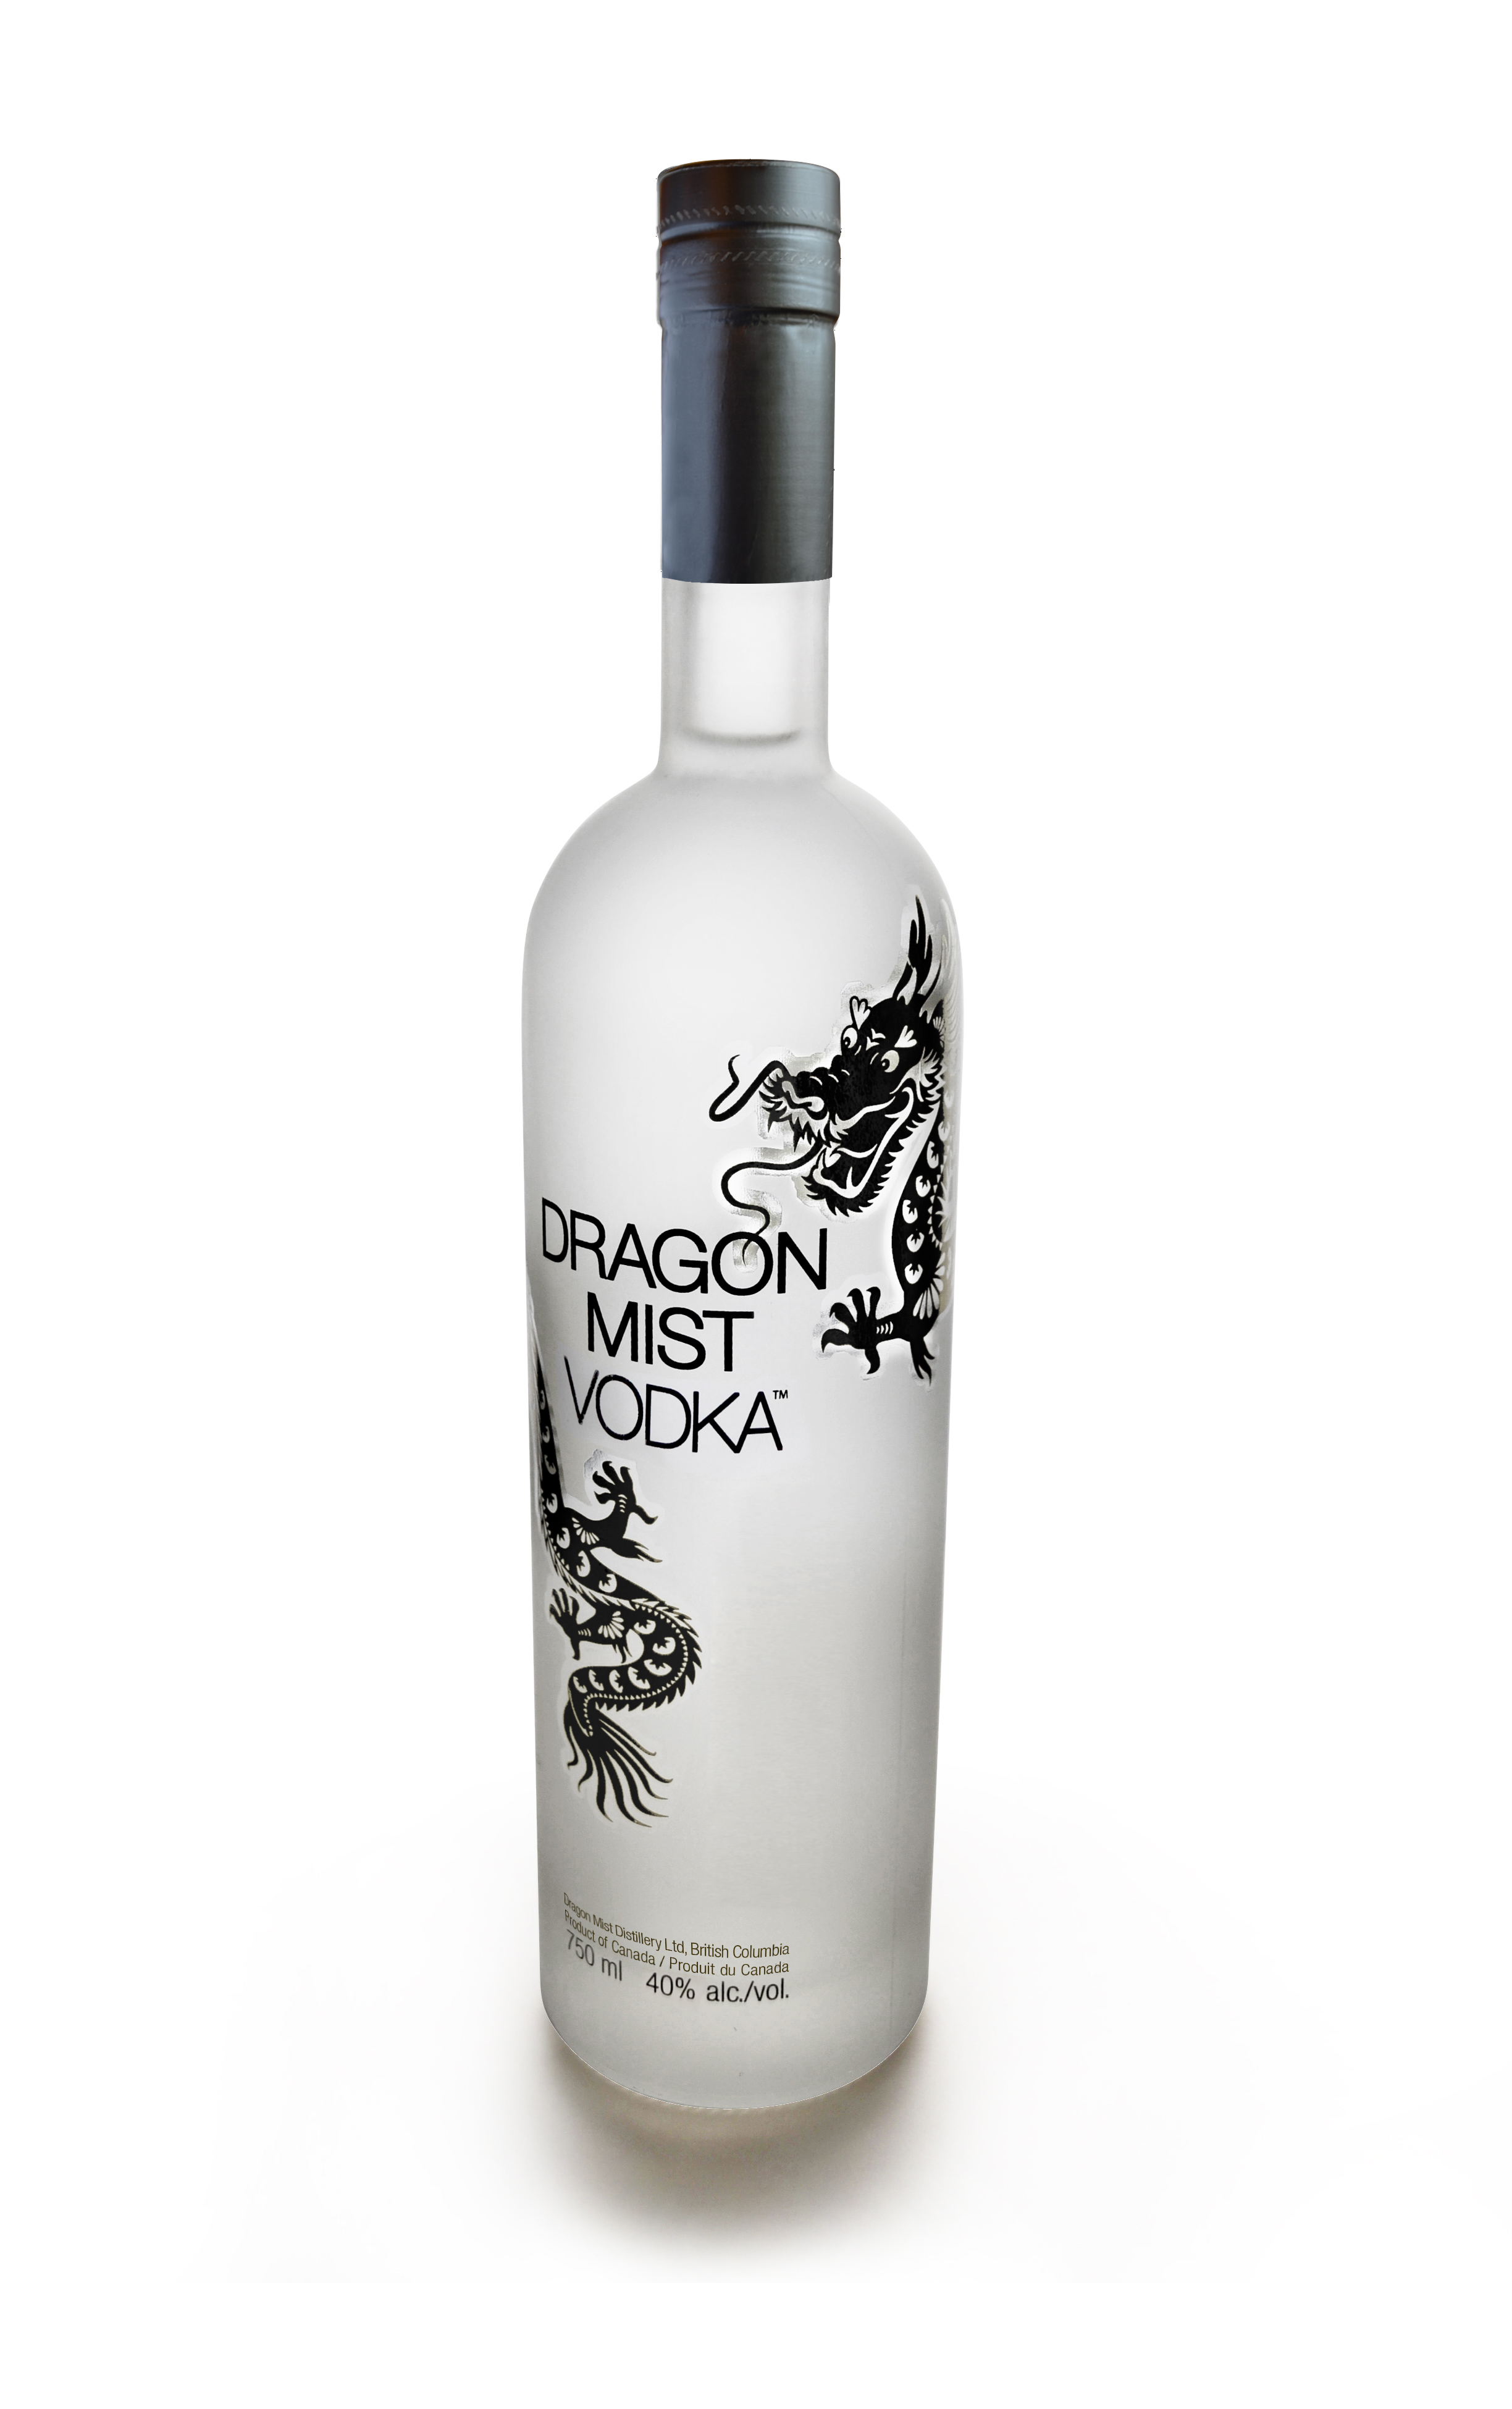 Dragon Mist Vodka